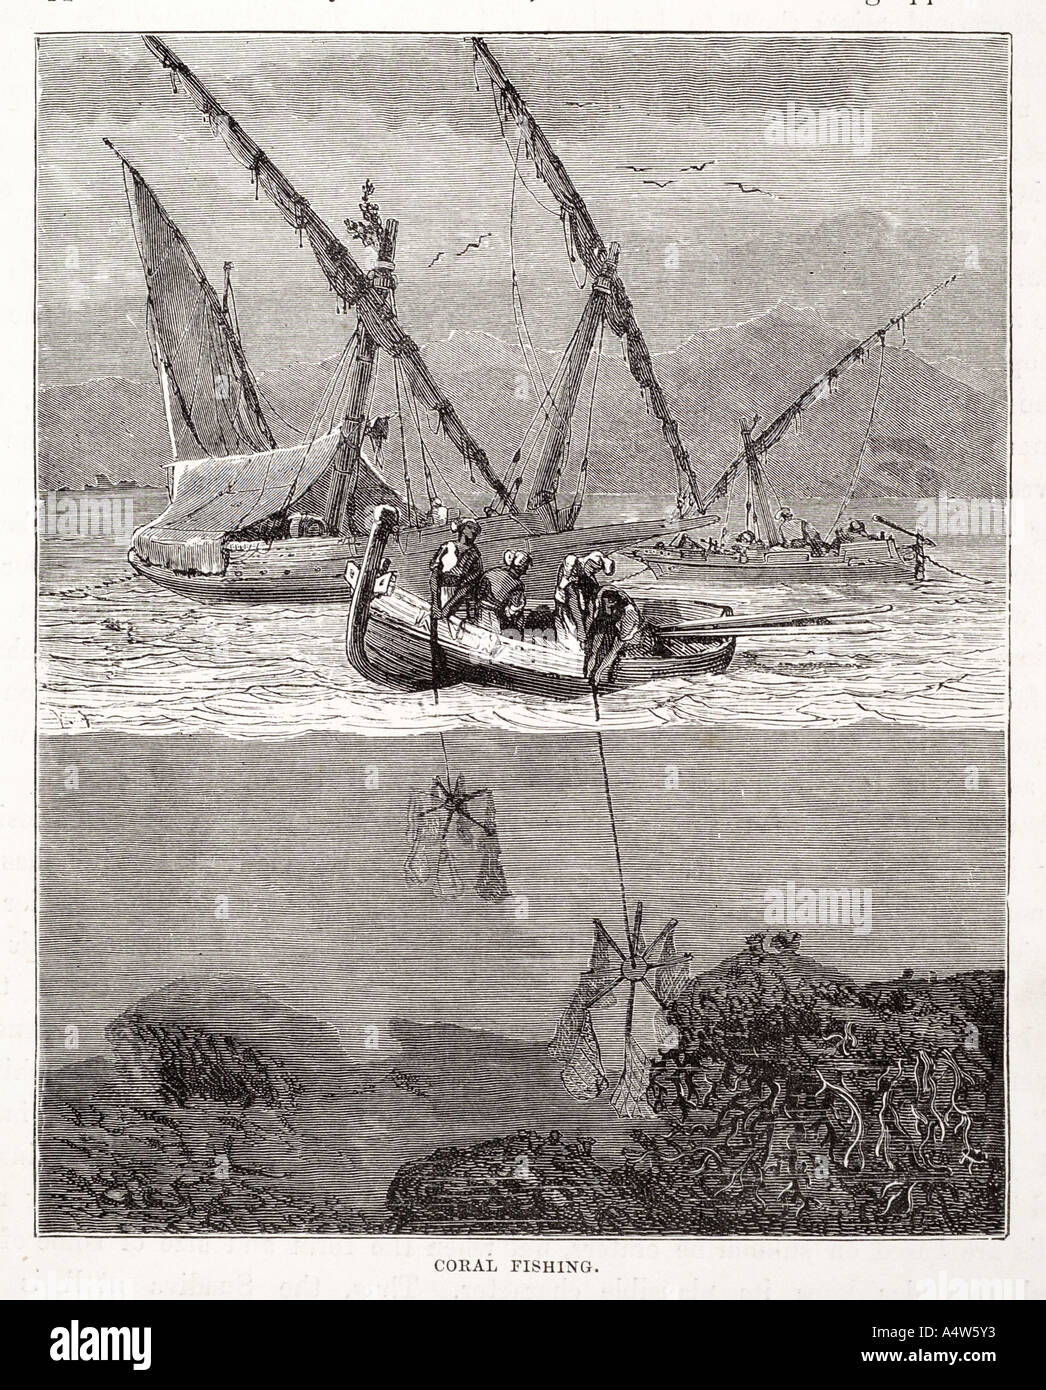 Coral dredging fish grapple Boat sail water coast reef bay cross section break rope harvest trade commerce marine maritime sea w - Stock Image